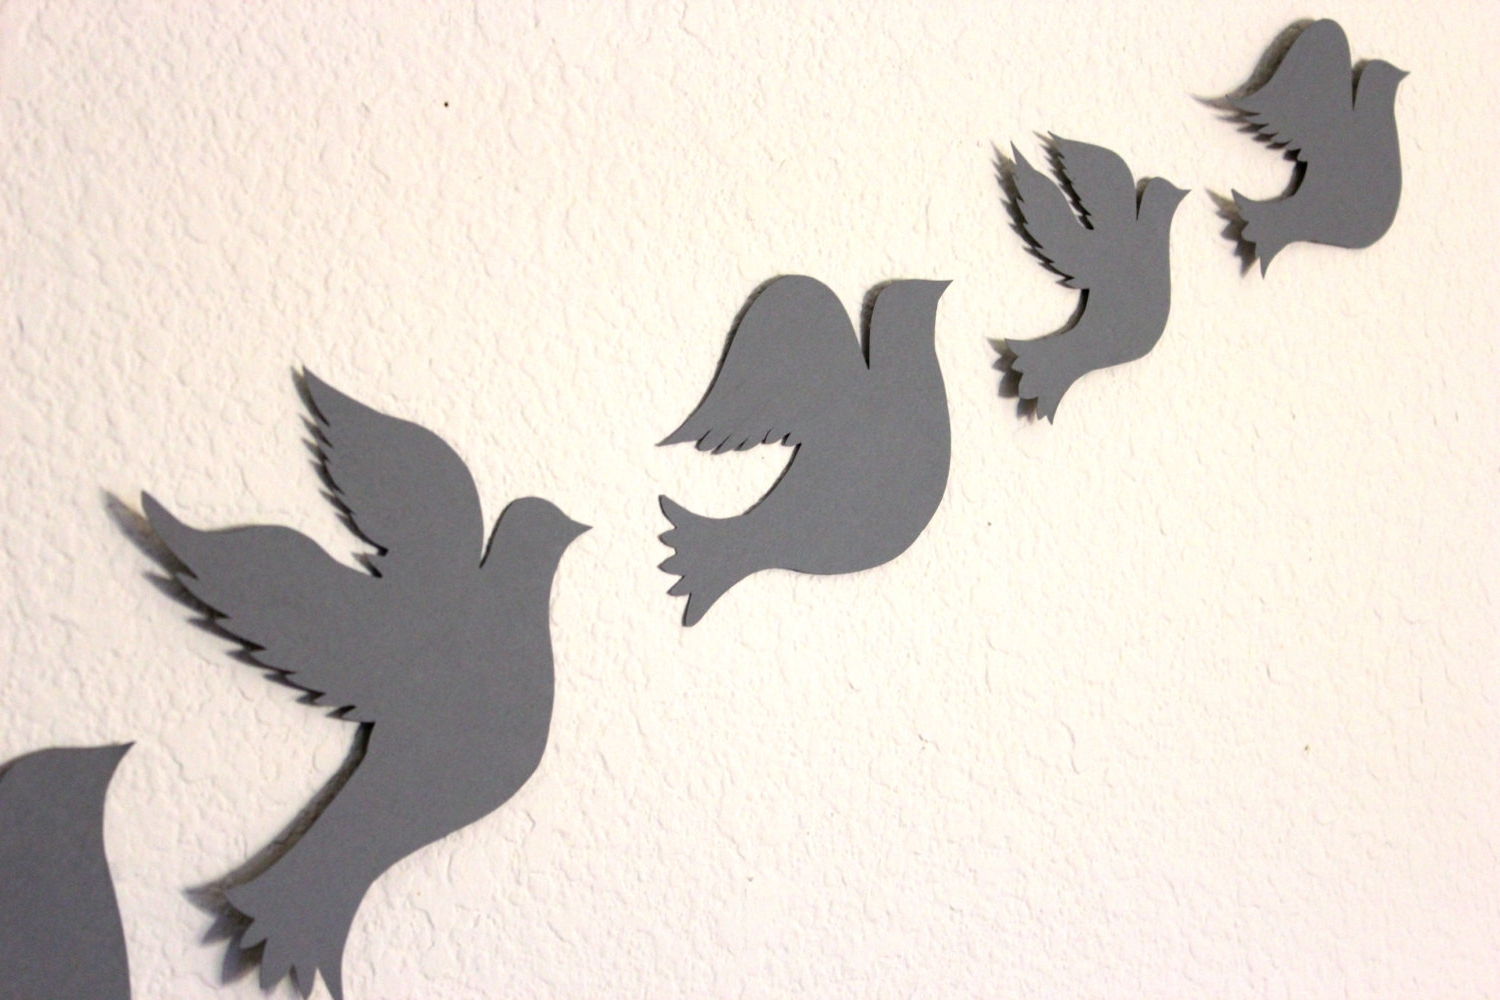 White Birds 3D Wall Art Inside Trendy Wall Decor: Awesome Paper Bird Wall Decor Metal Bird Wall Art (View 13 of 15)